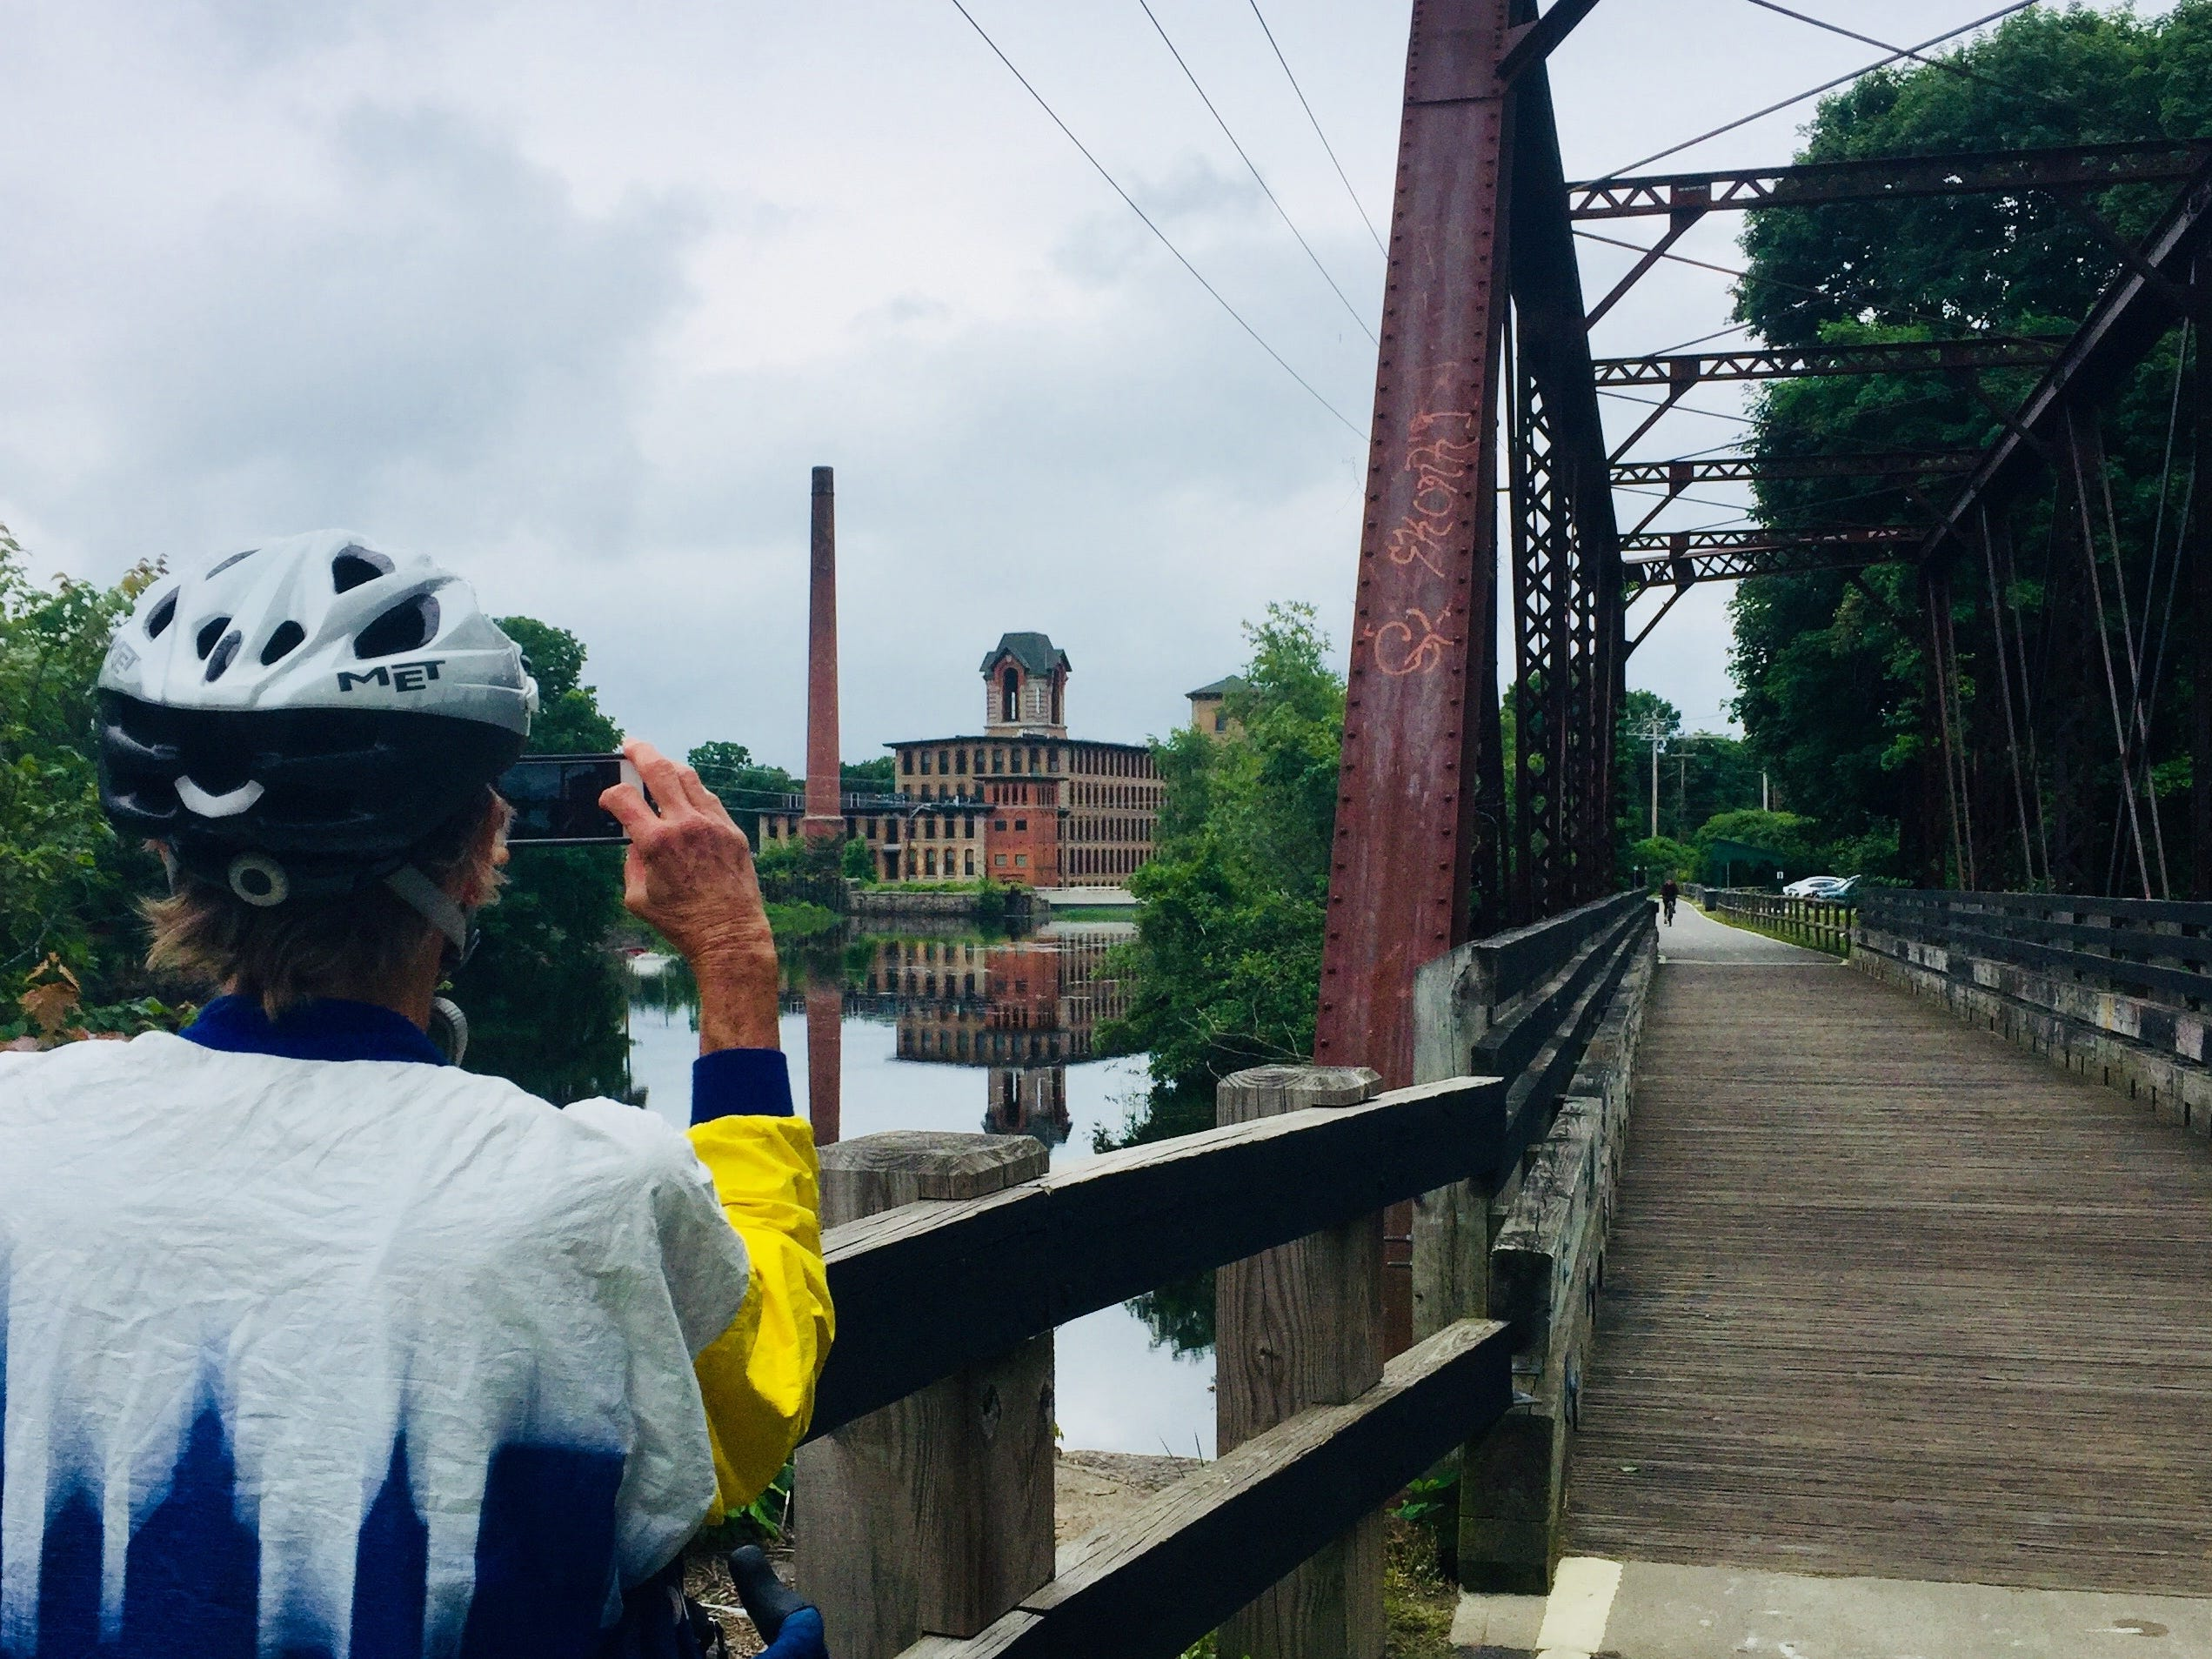 Cross half the width of Rhode Island on the Washington Secondary Bike Path, with views of ponds and brick mills.